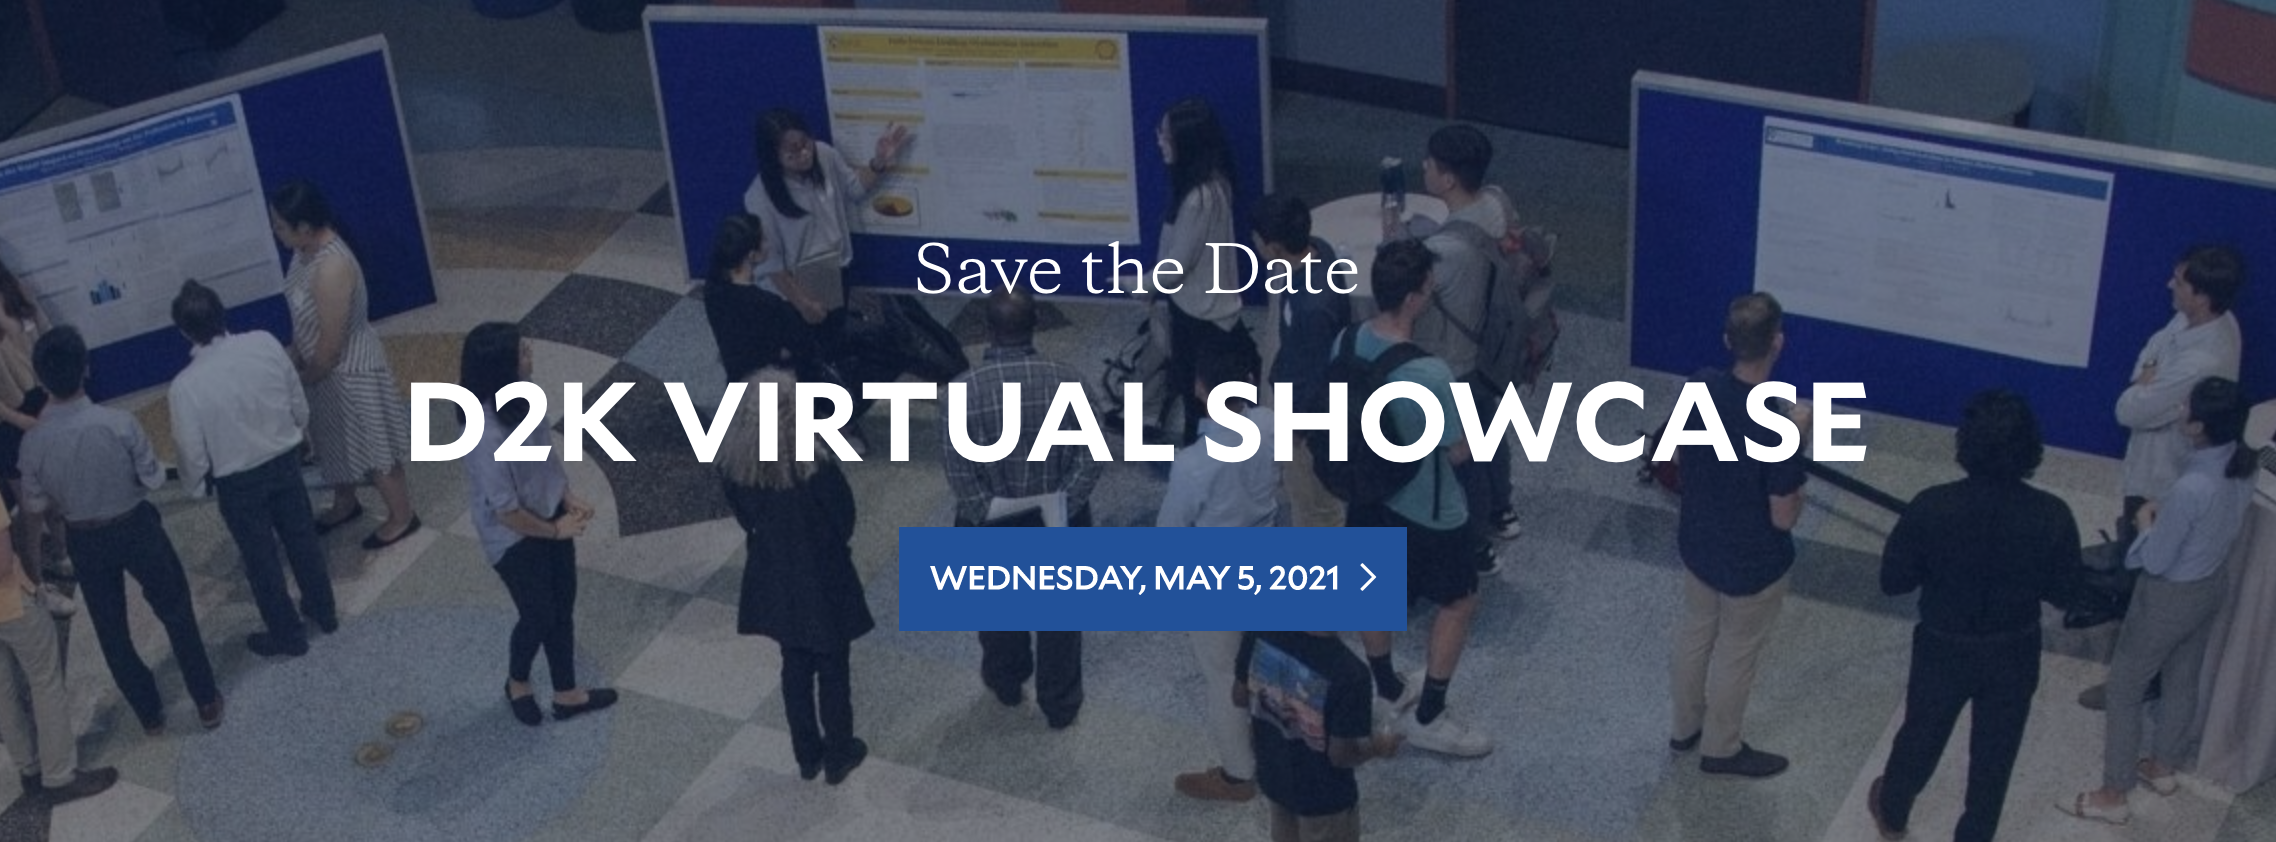 Register for D2K Virtual Showcase - Spring 2021